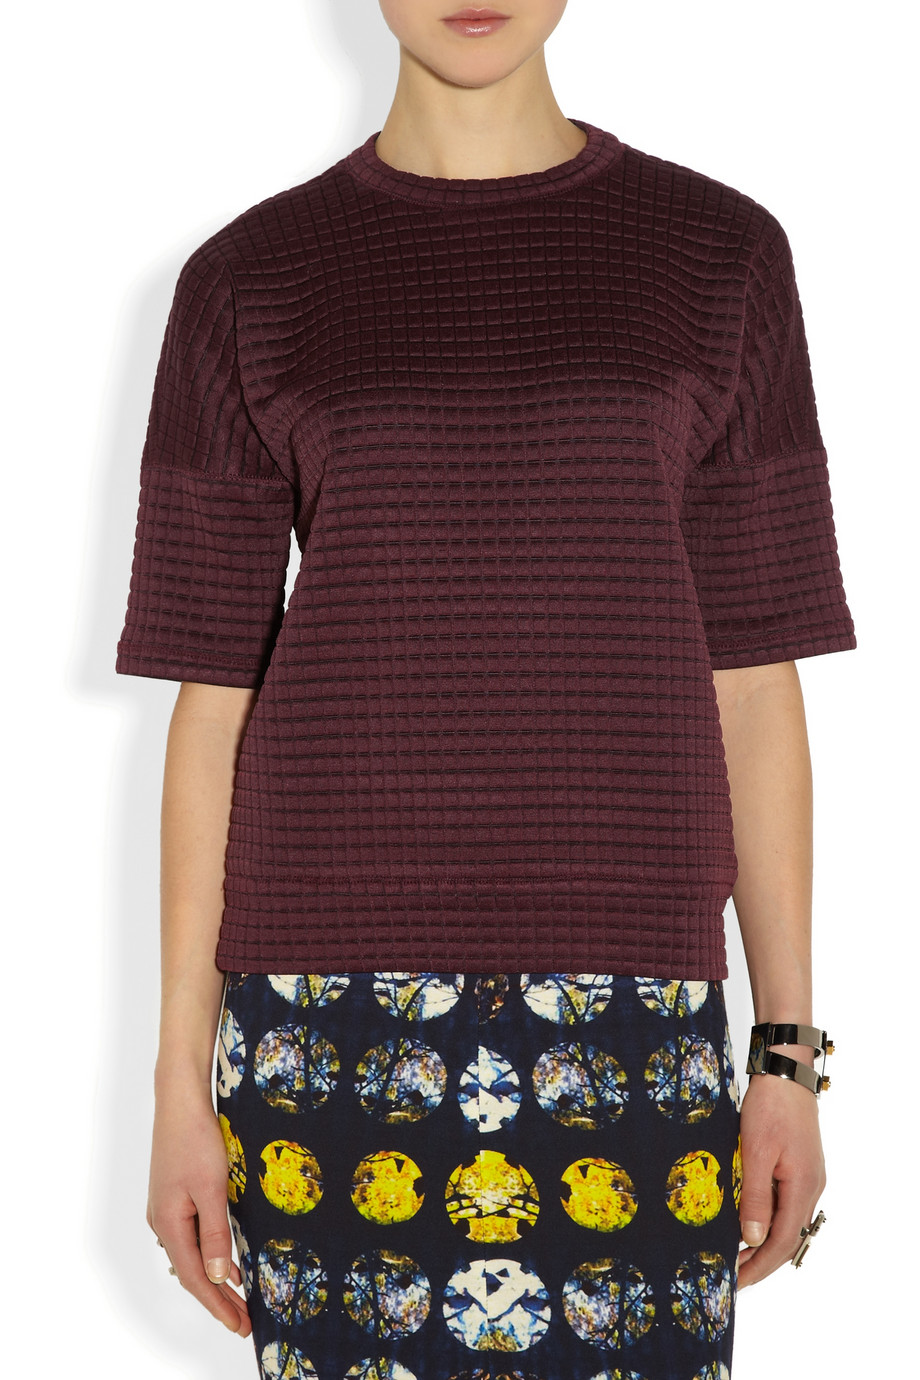 Derek Lam Waffle-knit jersey top – 65% at THE OUTNET.COM